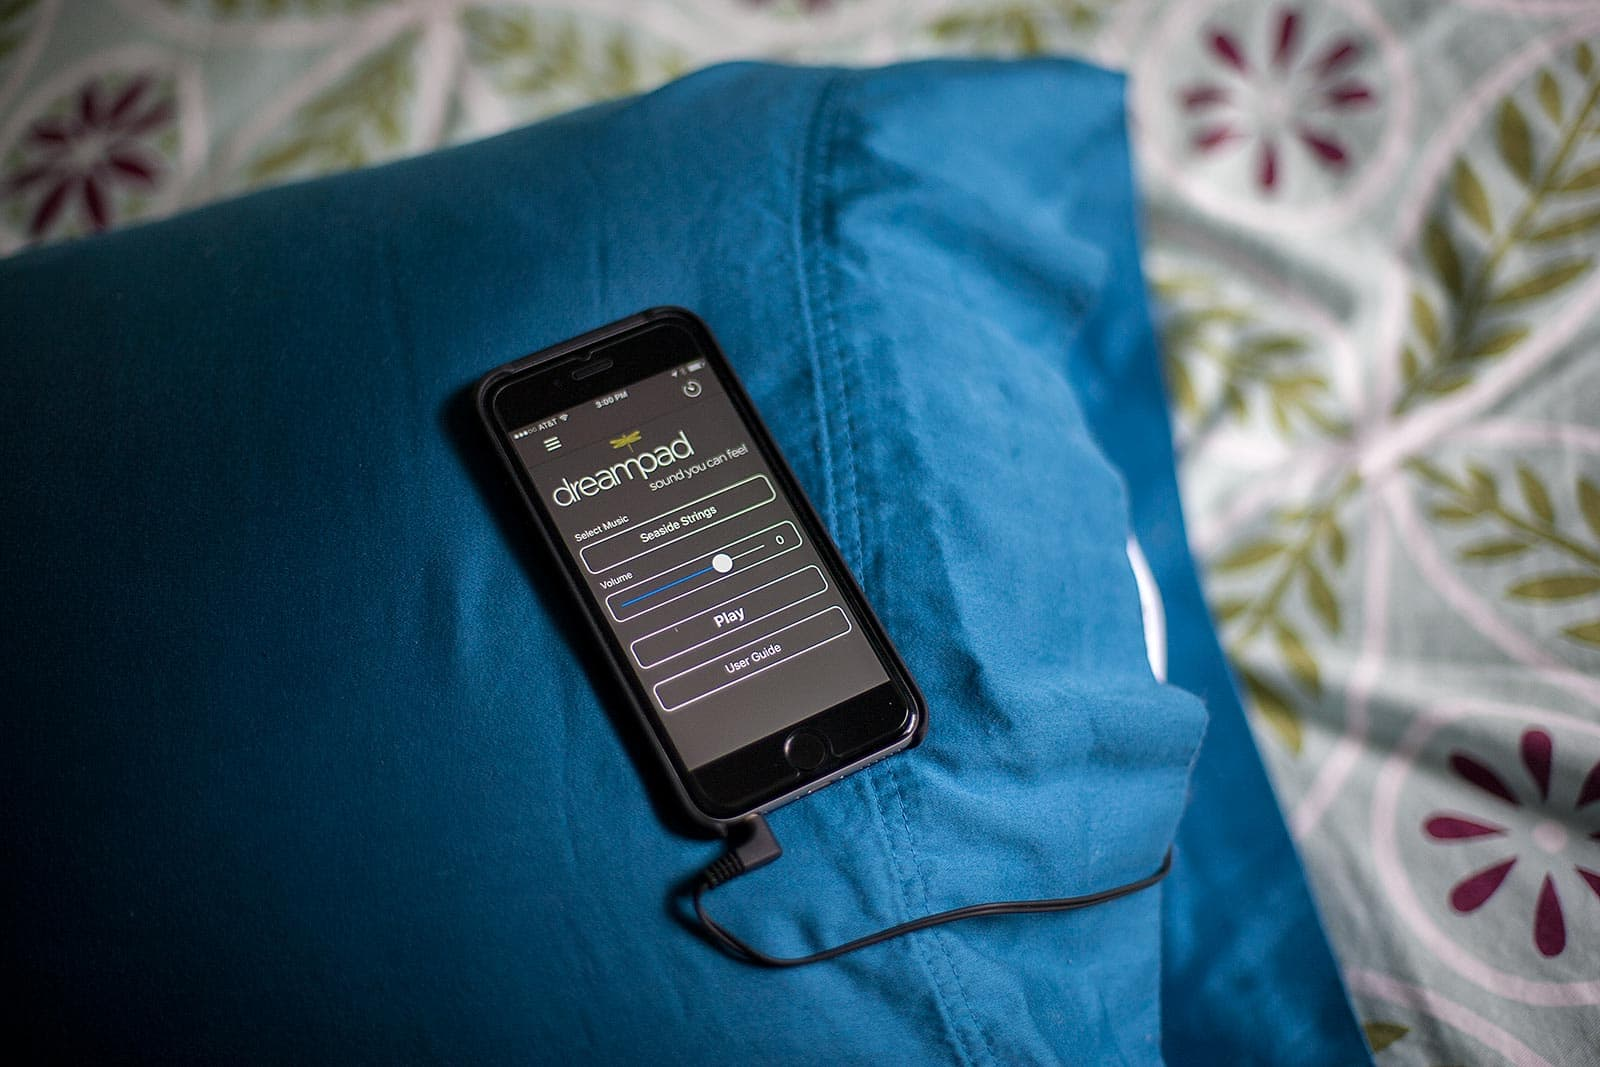 Dreampad is a pillow that joins forces with your iPhones to help you sleep.